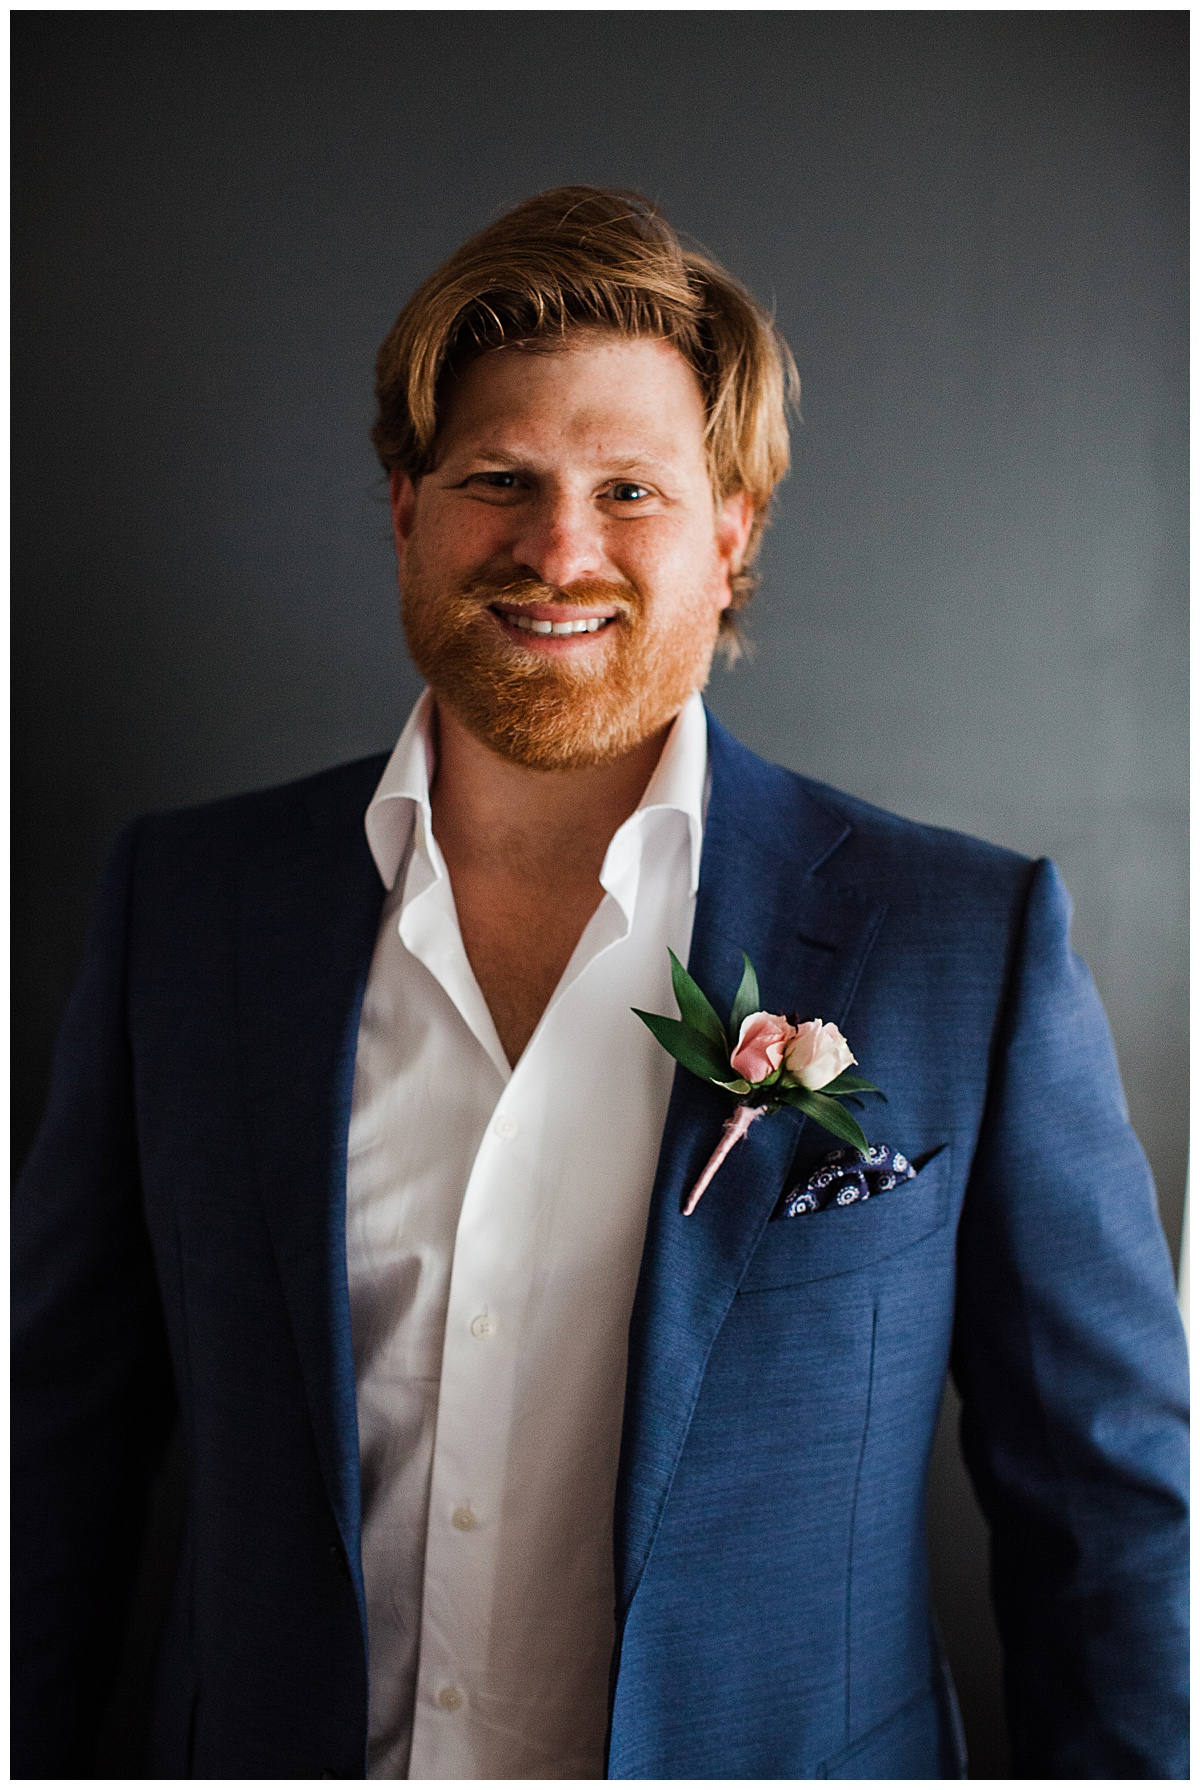 Groom smiling in blue and white suit